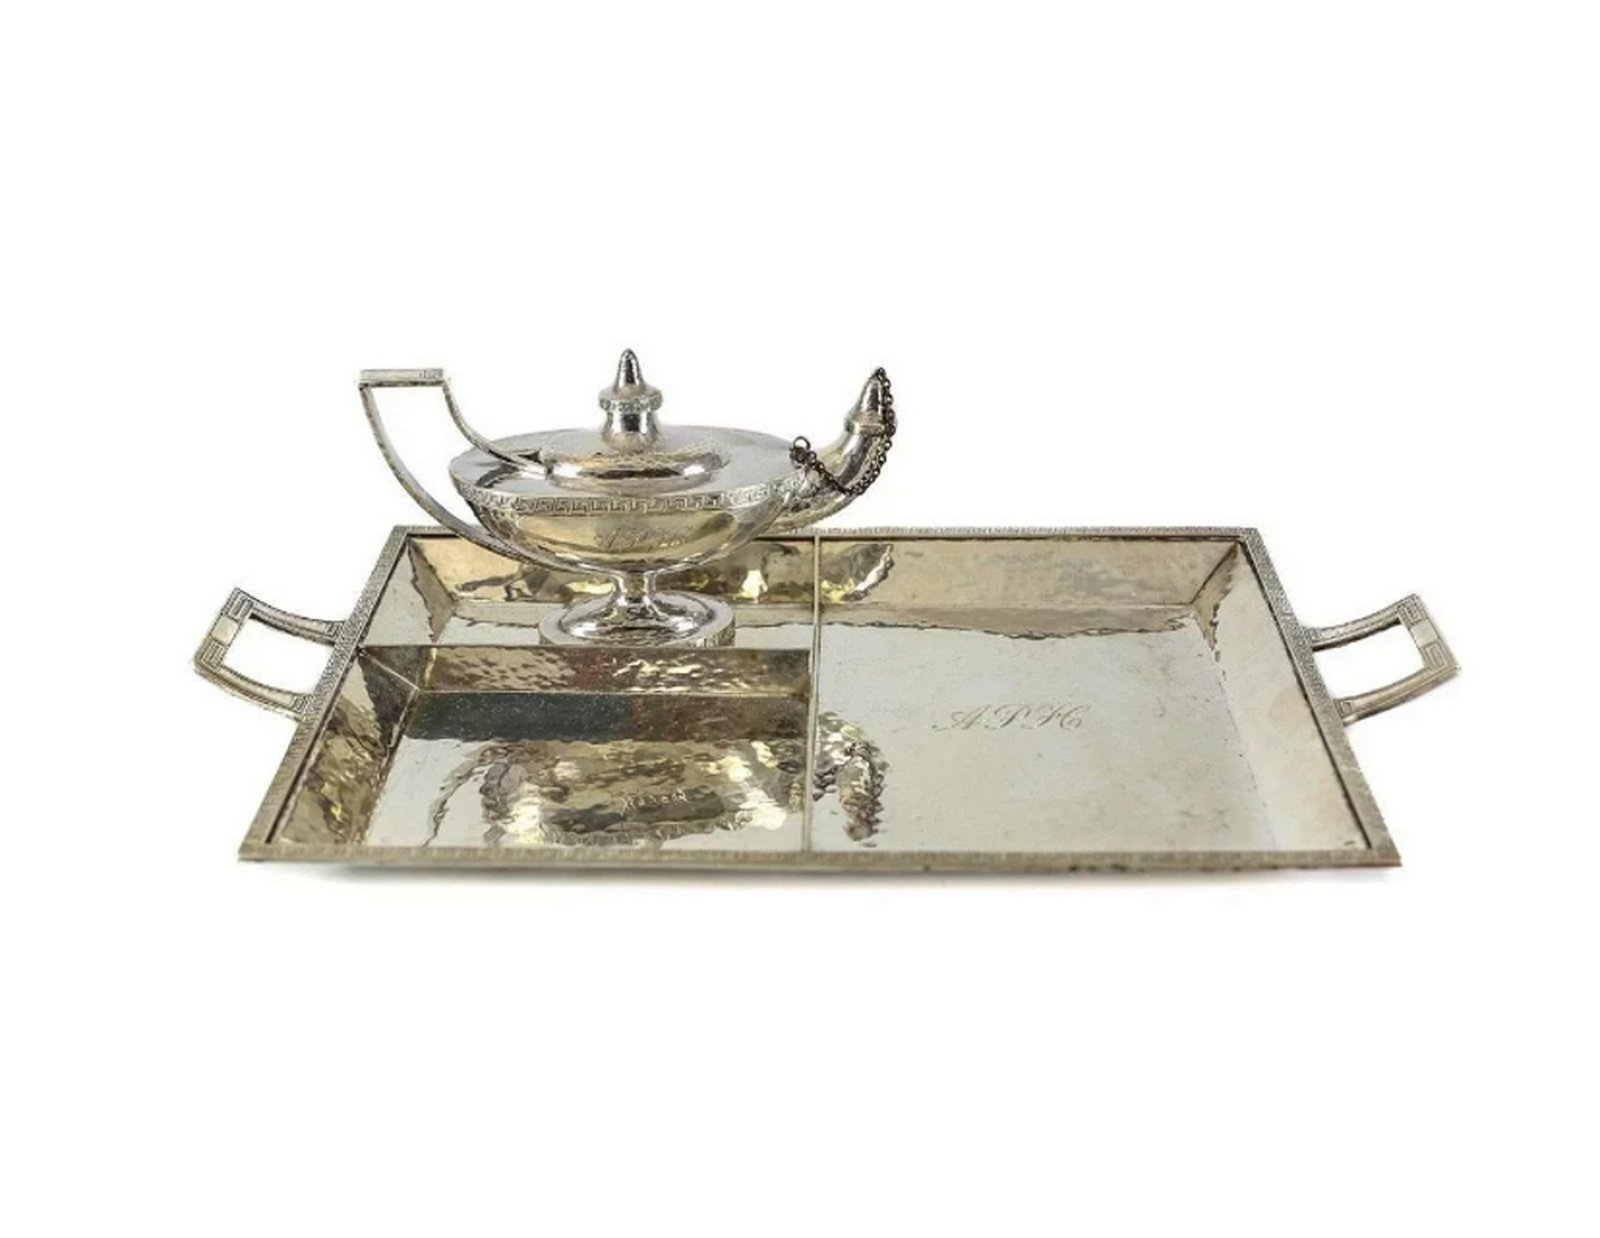 Marcus & Co. Sterling Silver Smoking Set